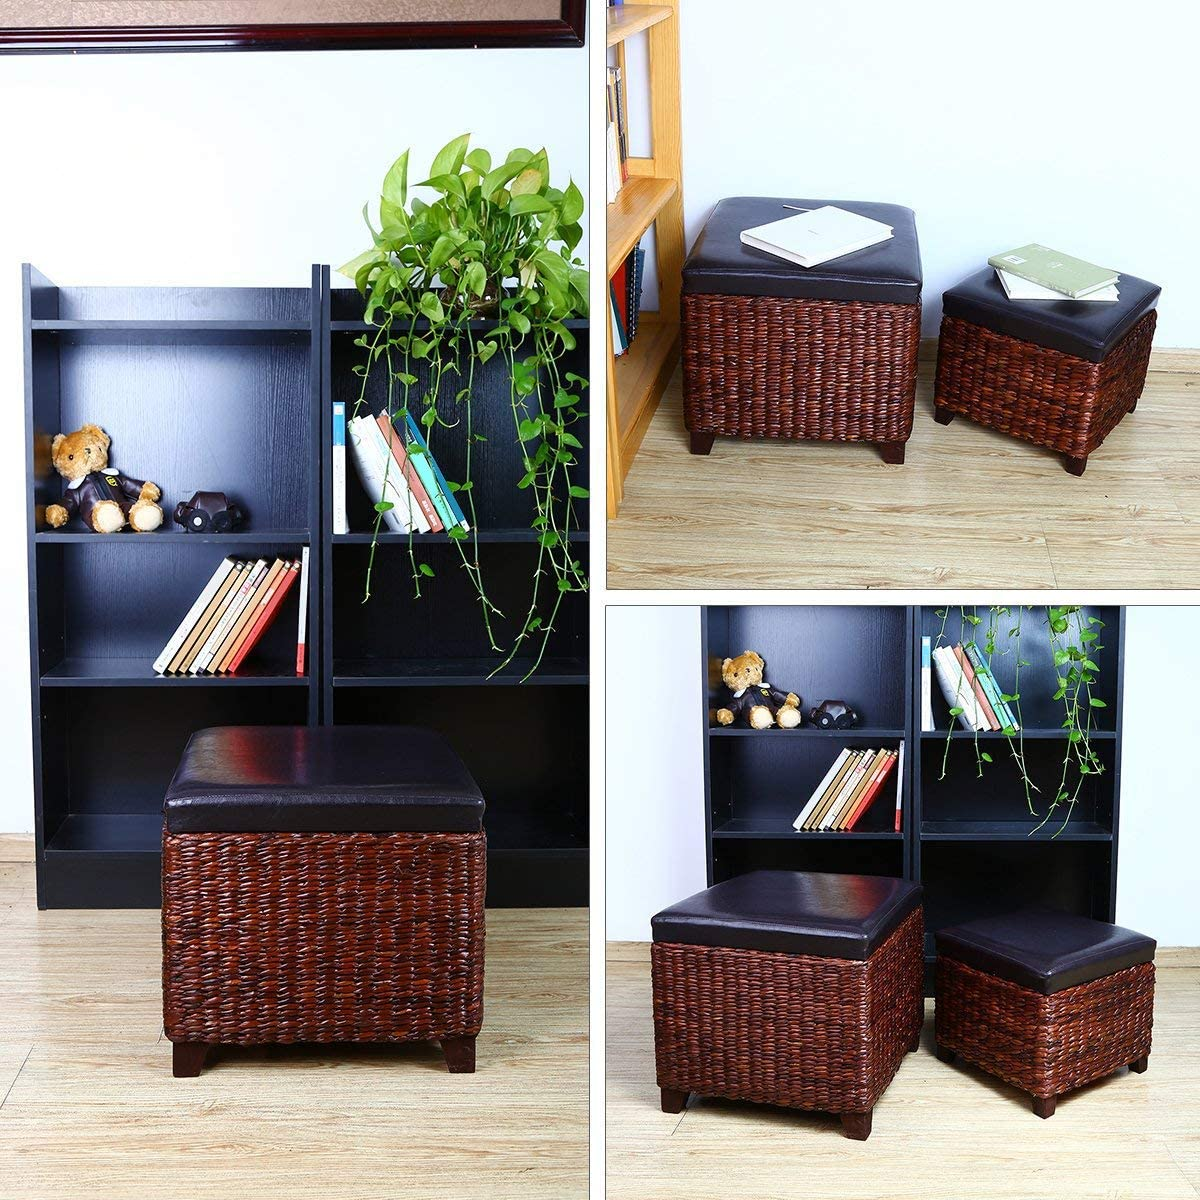 Eshow Ottoman Cube Shaped Storage Ottomans Hassocks and Ottomans as Footrest Stool Ottoman Bench Set with Lift Top and Wood Legs for Bedroom and Living Room Storage 2-Piece: Kitchen & Dining